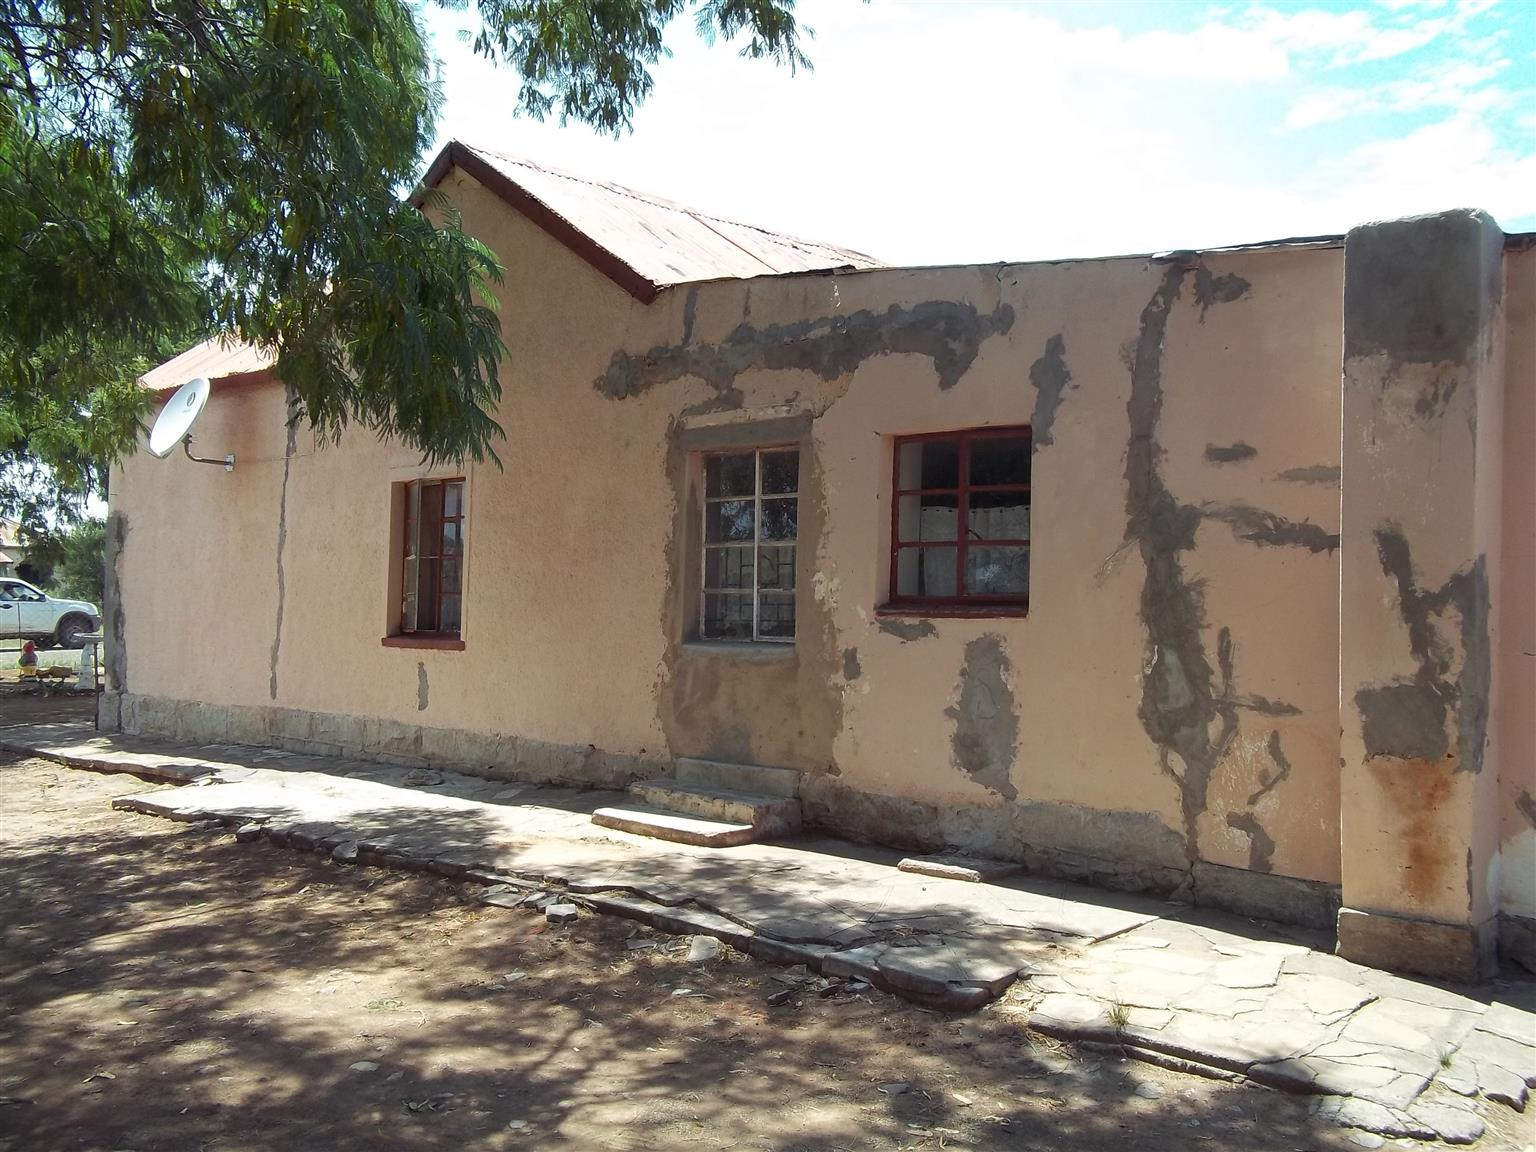 3 bedroom house for sale  in steynsrus